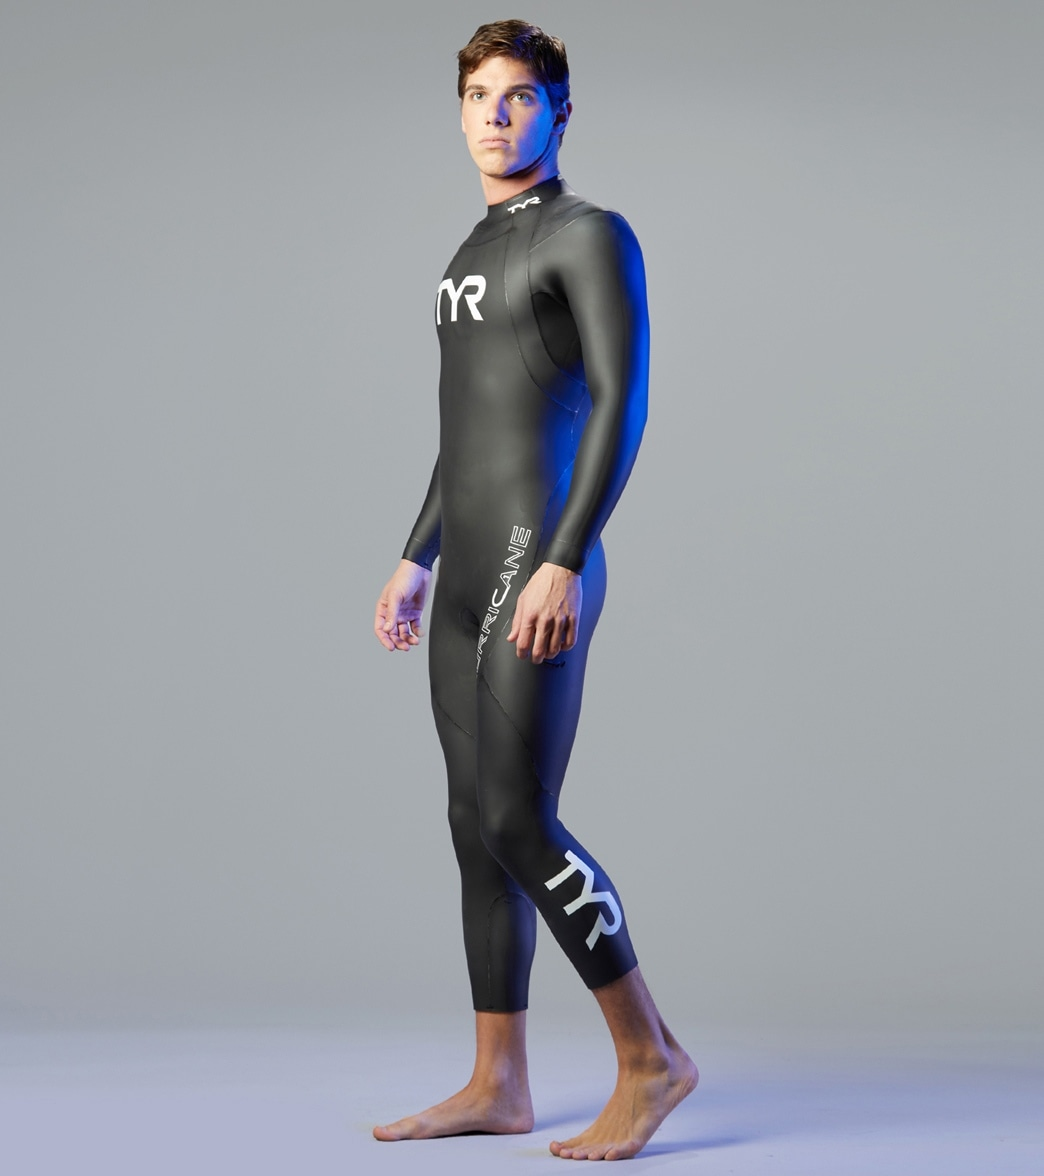 b4e3424220184 TYR Men s Hurricane Cat 1 Fullsleeve Triathlon Wetsuit at SwimOutlet ...